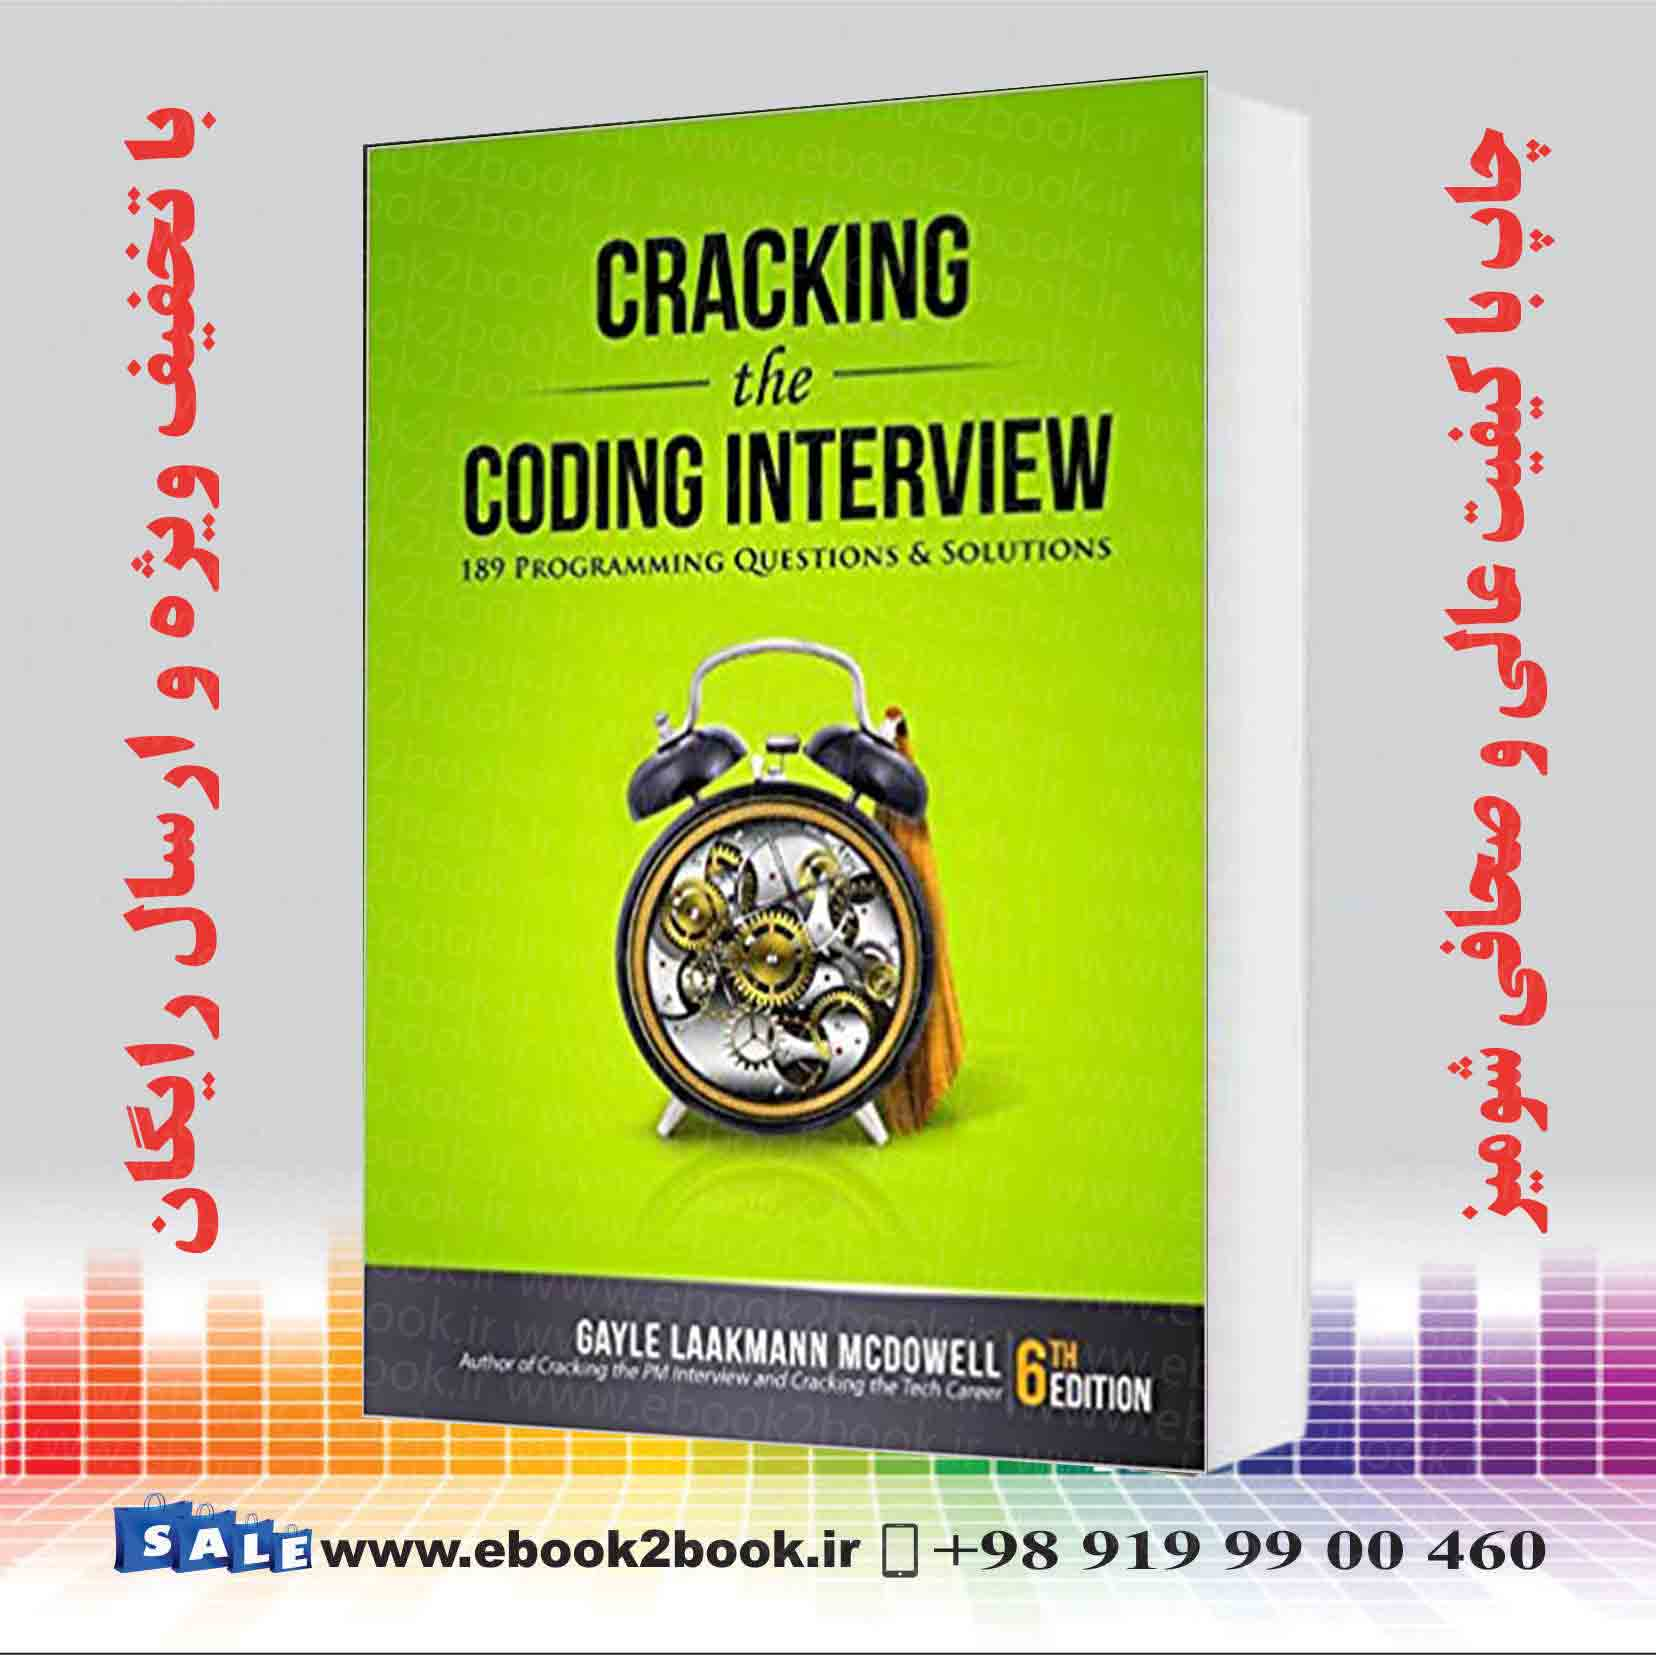 Cracking The Coding Interview 189 Programming Questions And Solutions 6th Edition فروشگاه کتاب ایبوک تو بوک